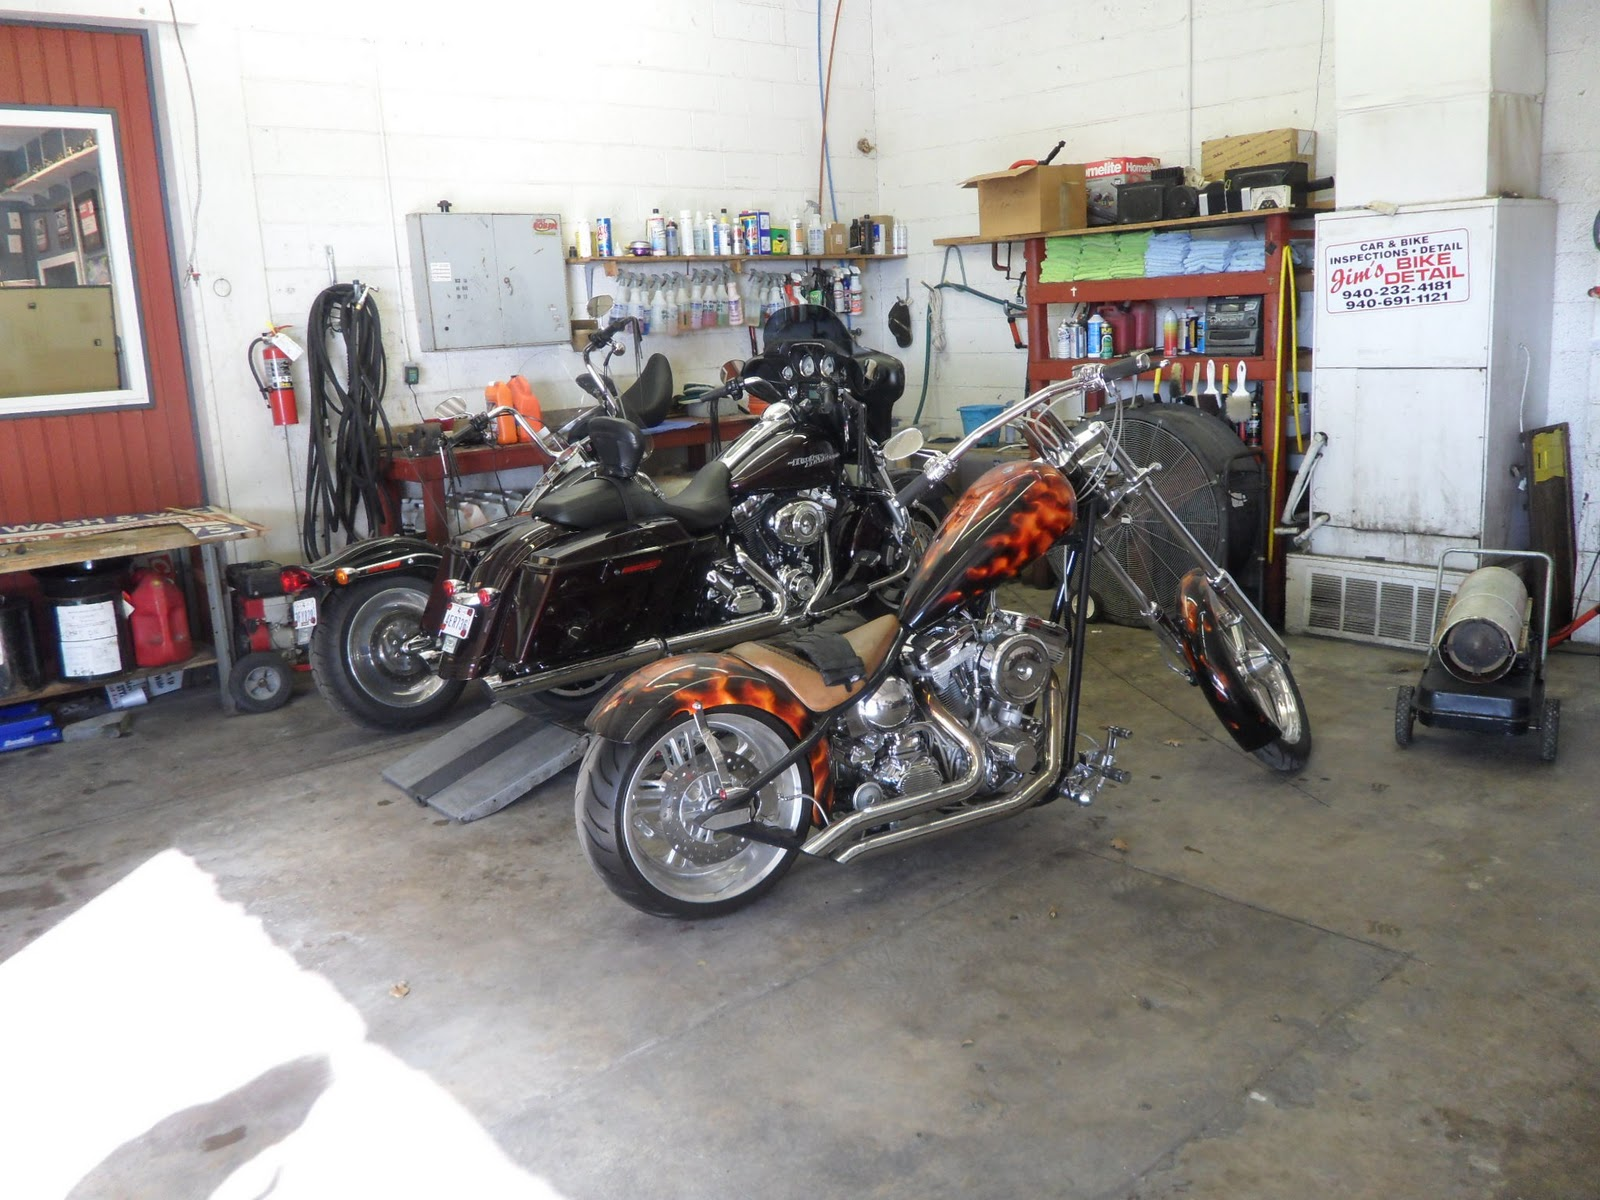 THE FIRST BIKE IS JIM'S 2010 CHOPPER HE WON AT THE ADULT BIKER RALLY IN ...